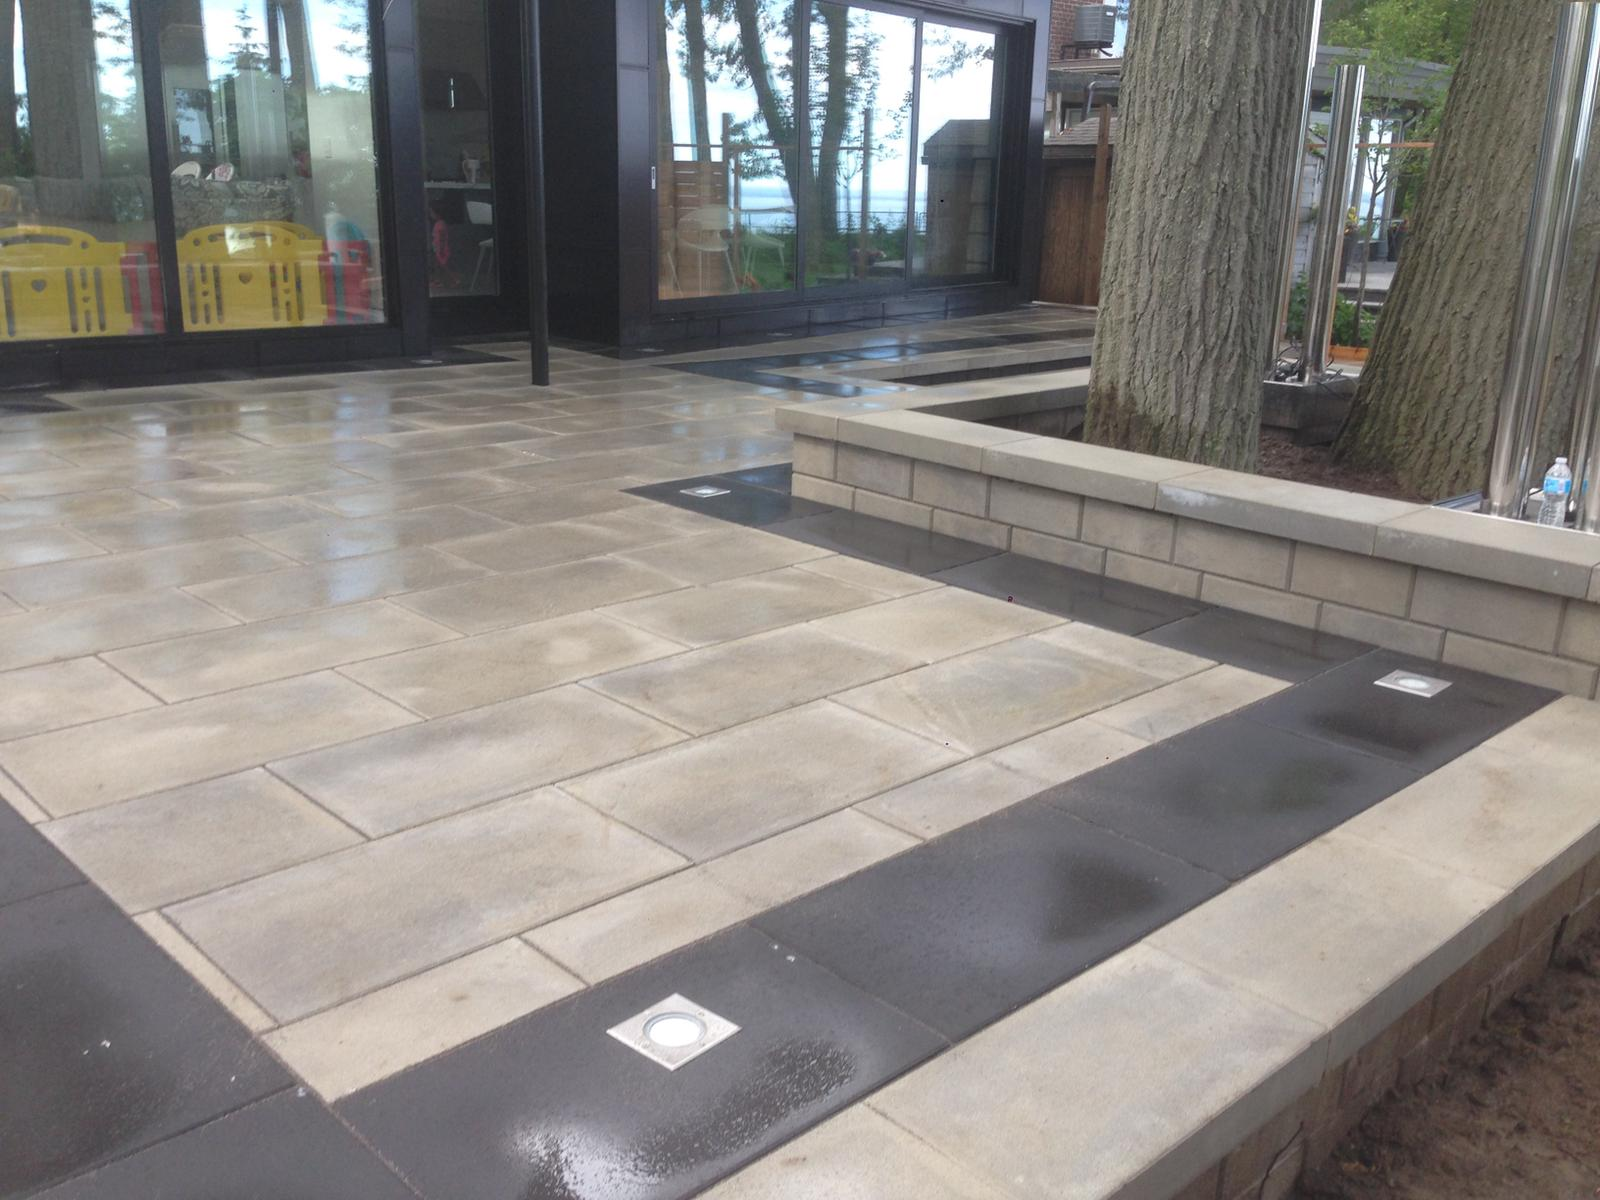 Interlock gray stones